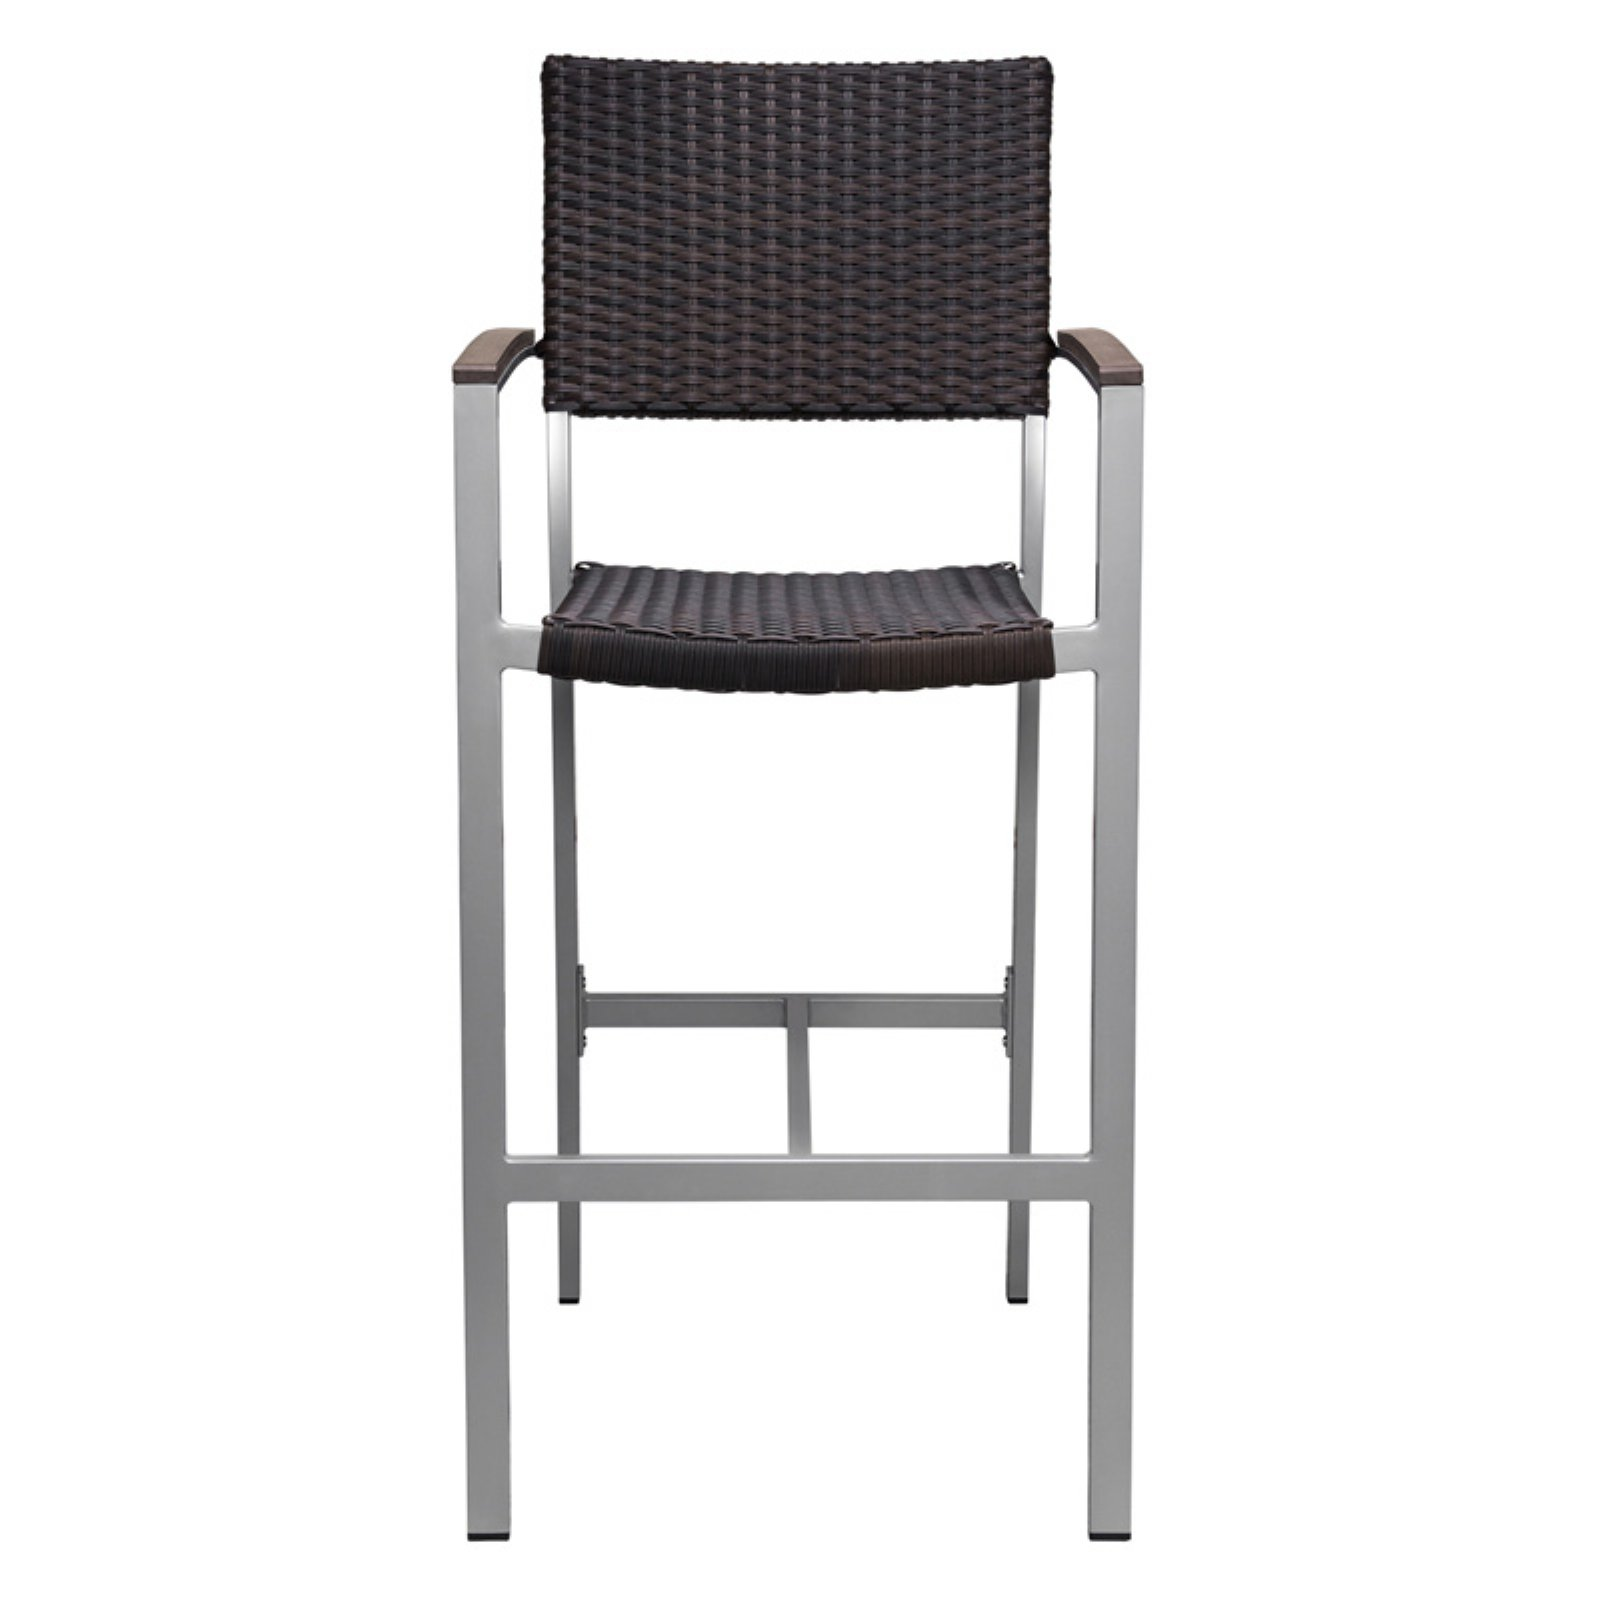 Pleasant Source Contract Fiji 30 In Patio Bar Stool Gmtry Best Dining Table And Chair Ideas Images Gmtryco